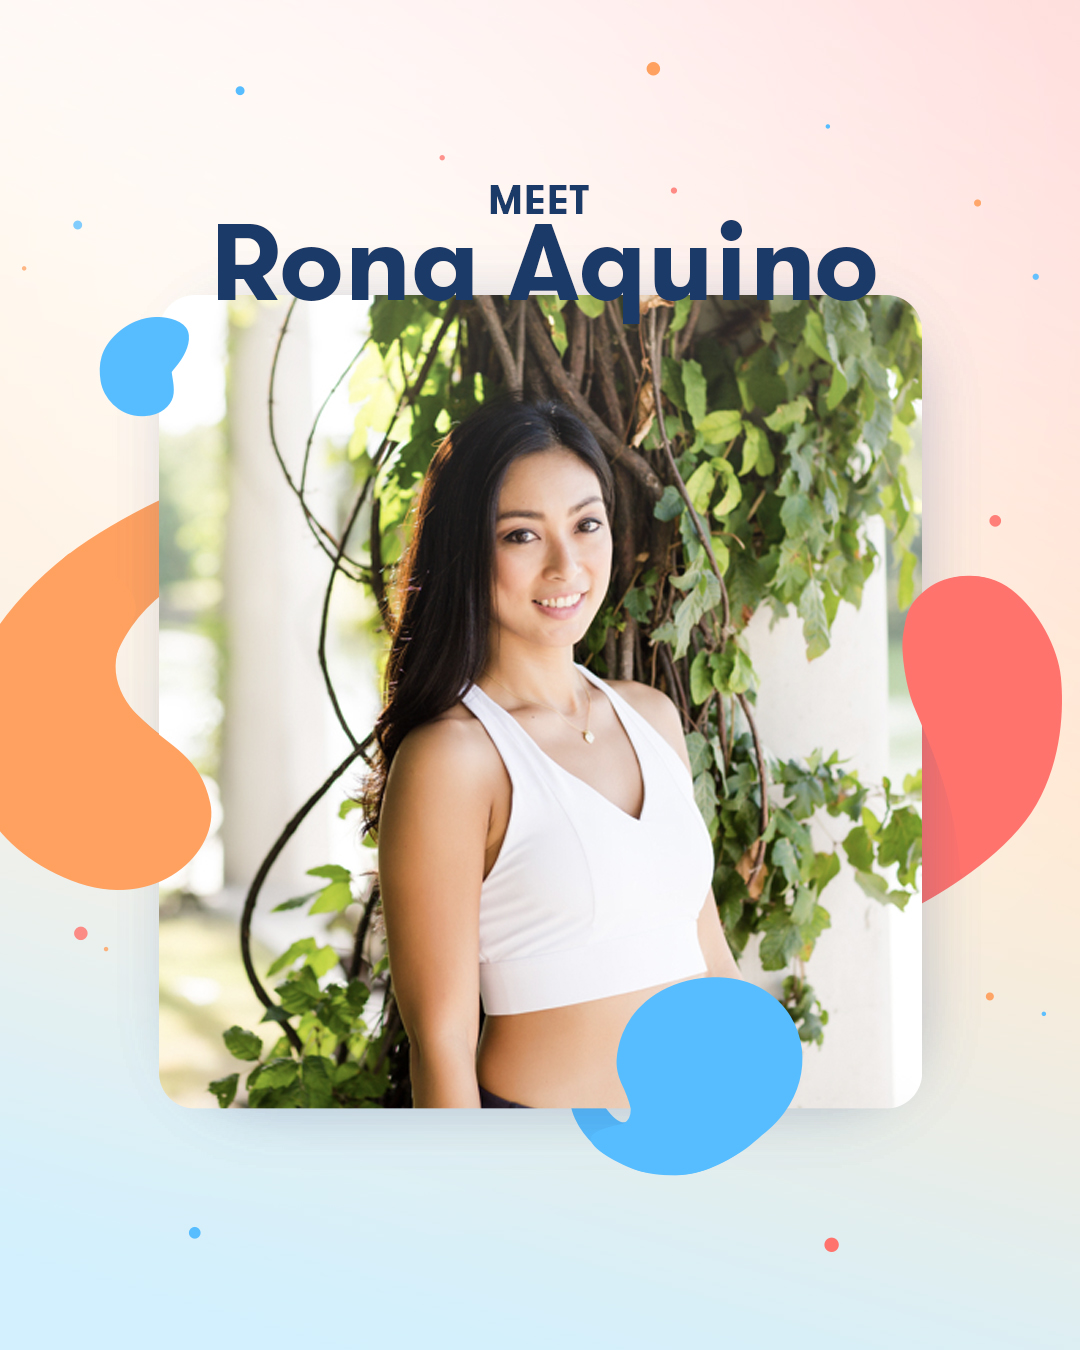 Rona Aquino stands in a white shirt with her hair down, up against a leafy vine.